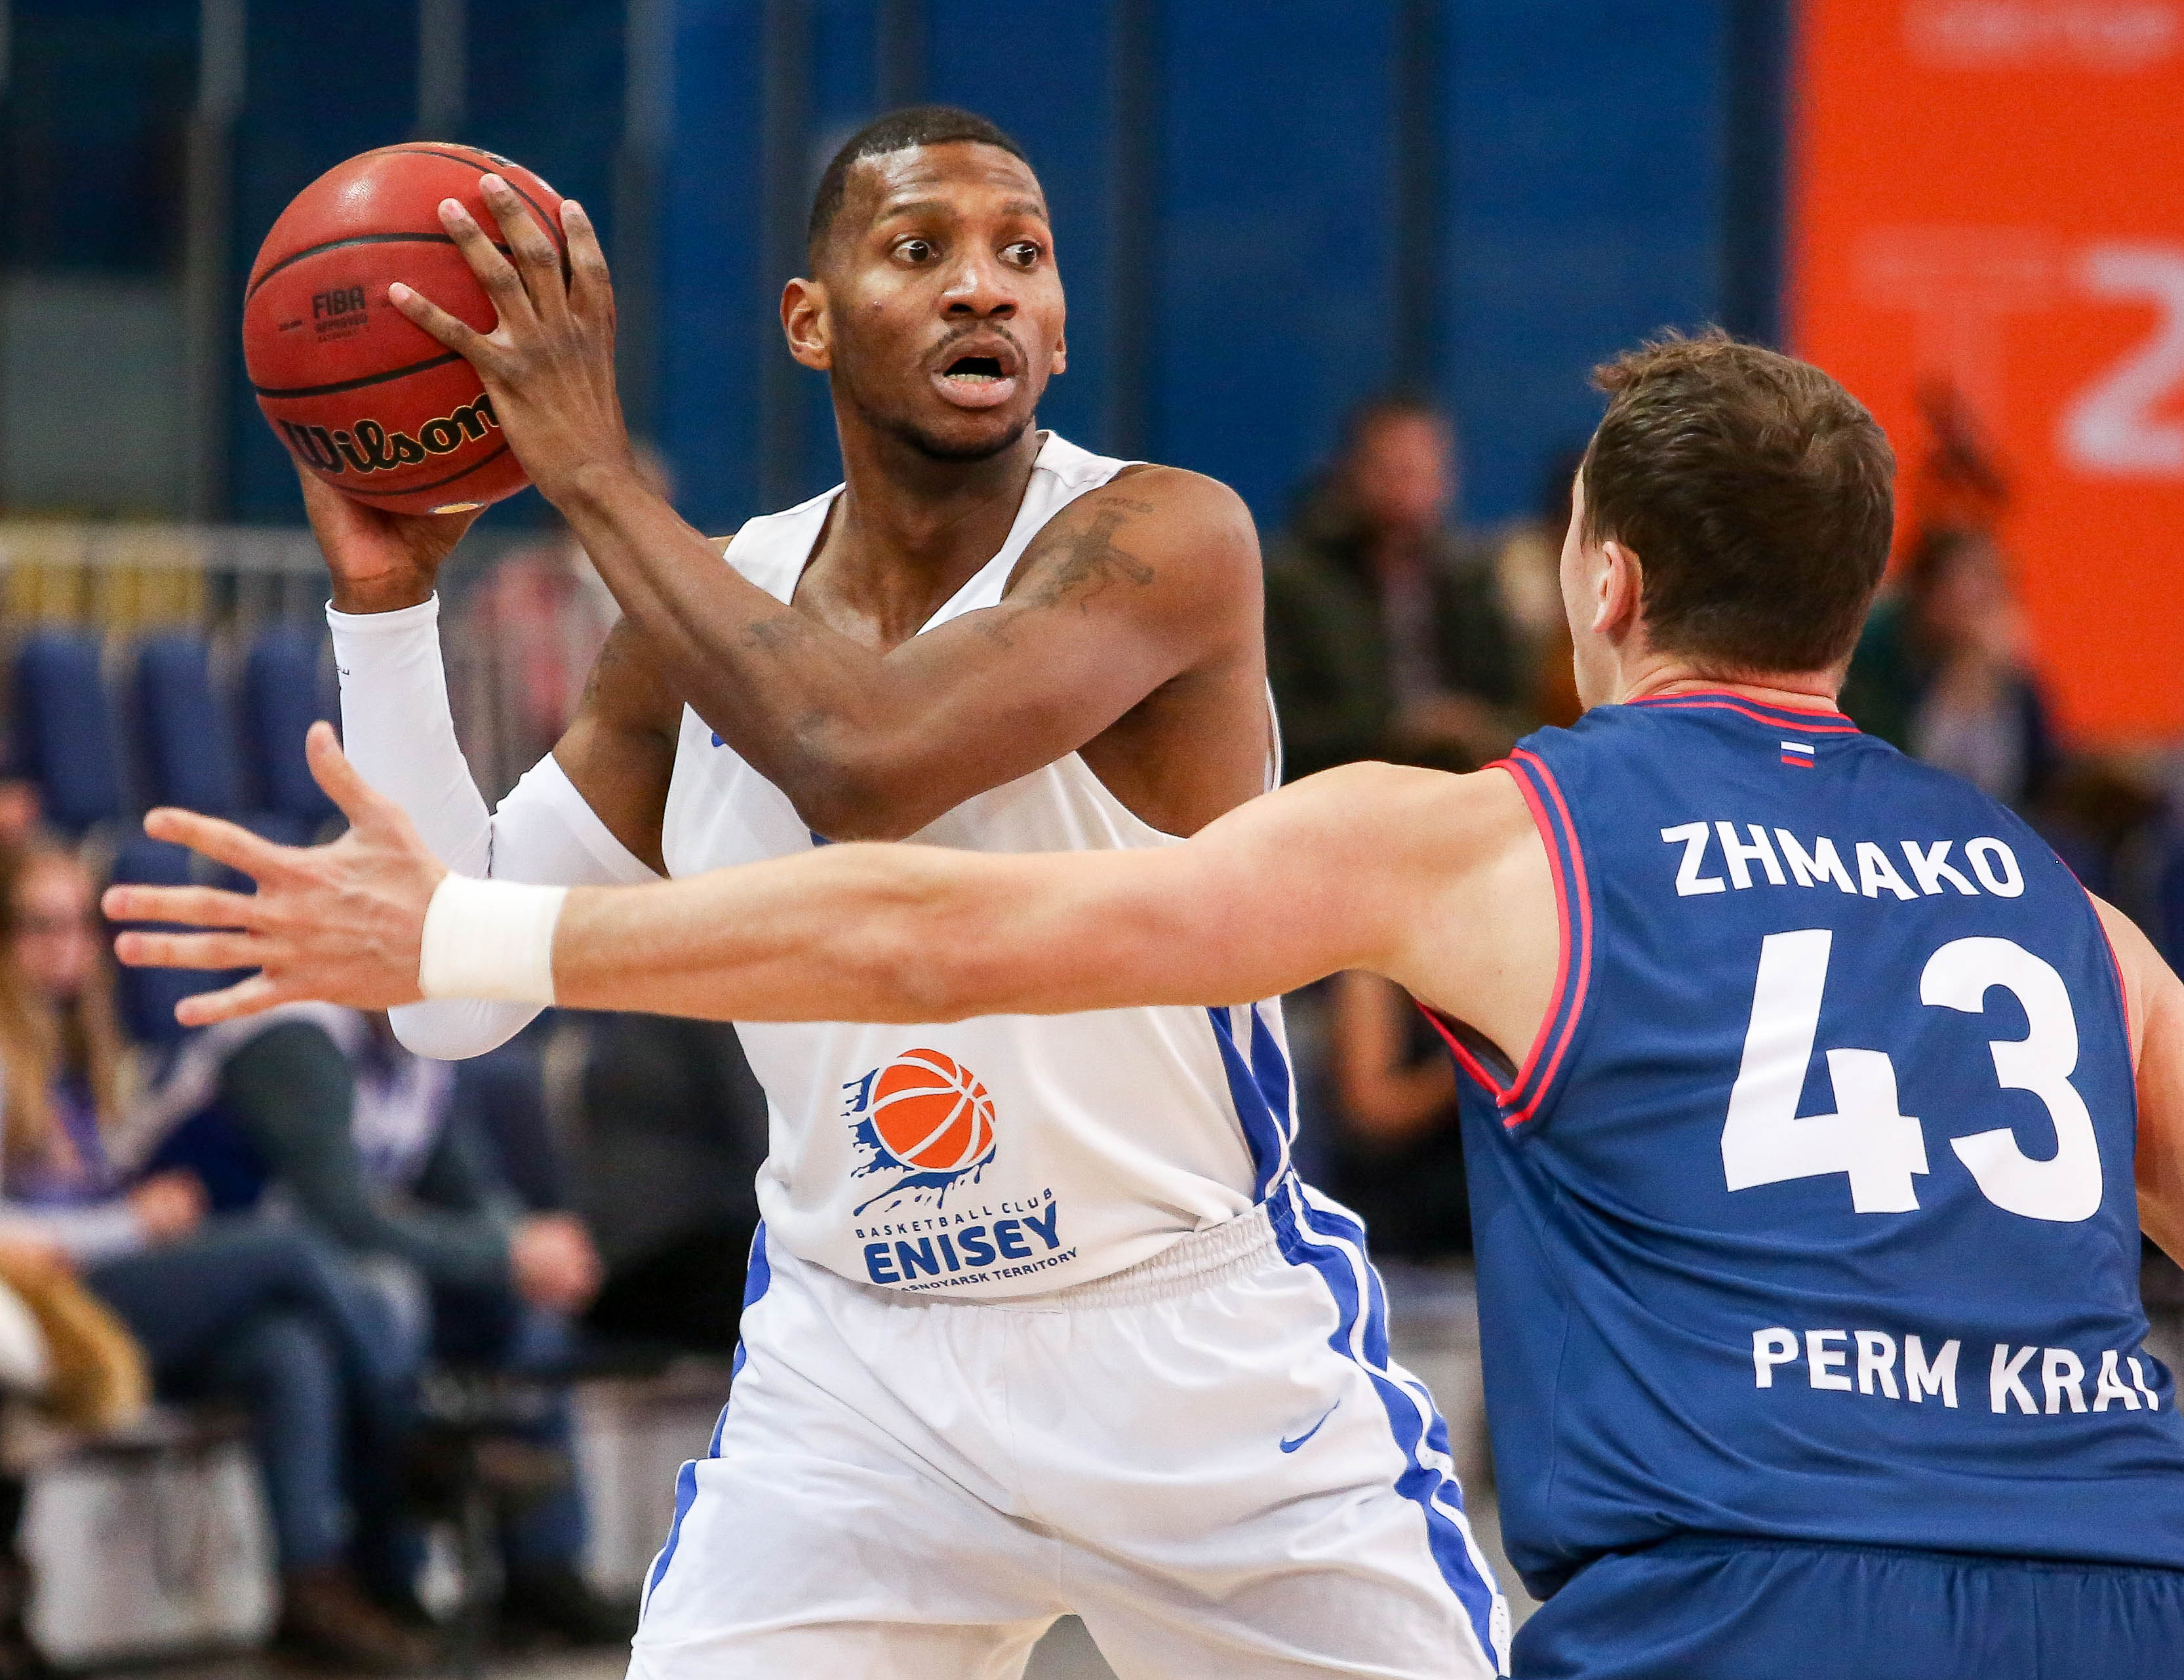 Enisey Bullies PARMA On The Glass, Grabs Second Win